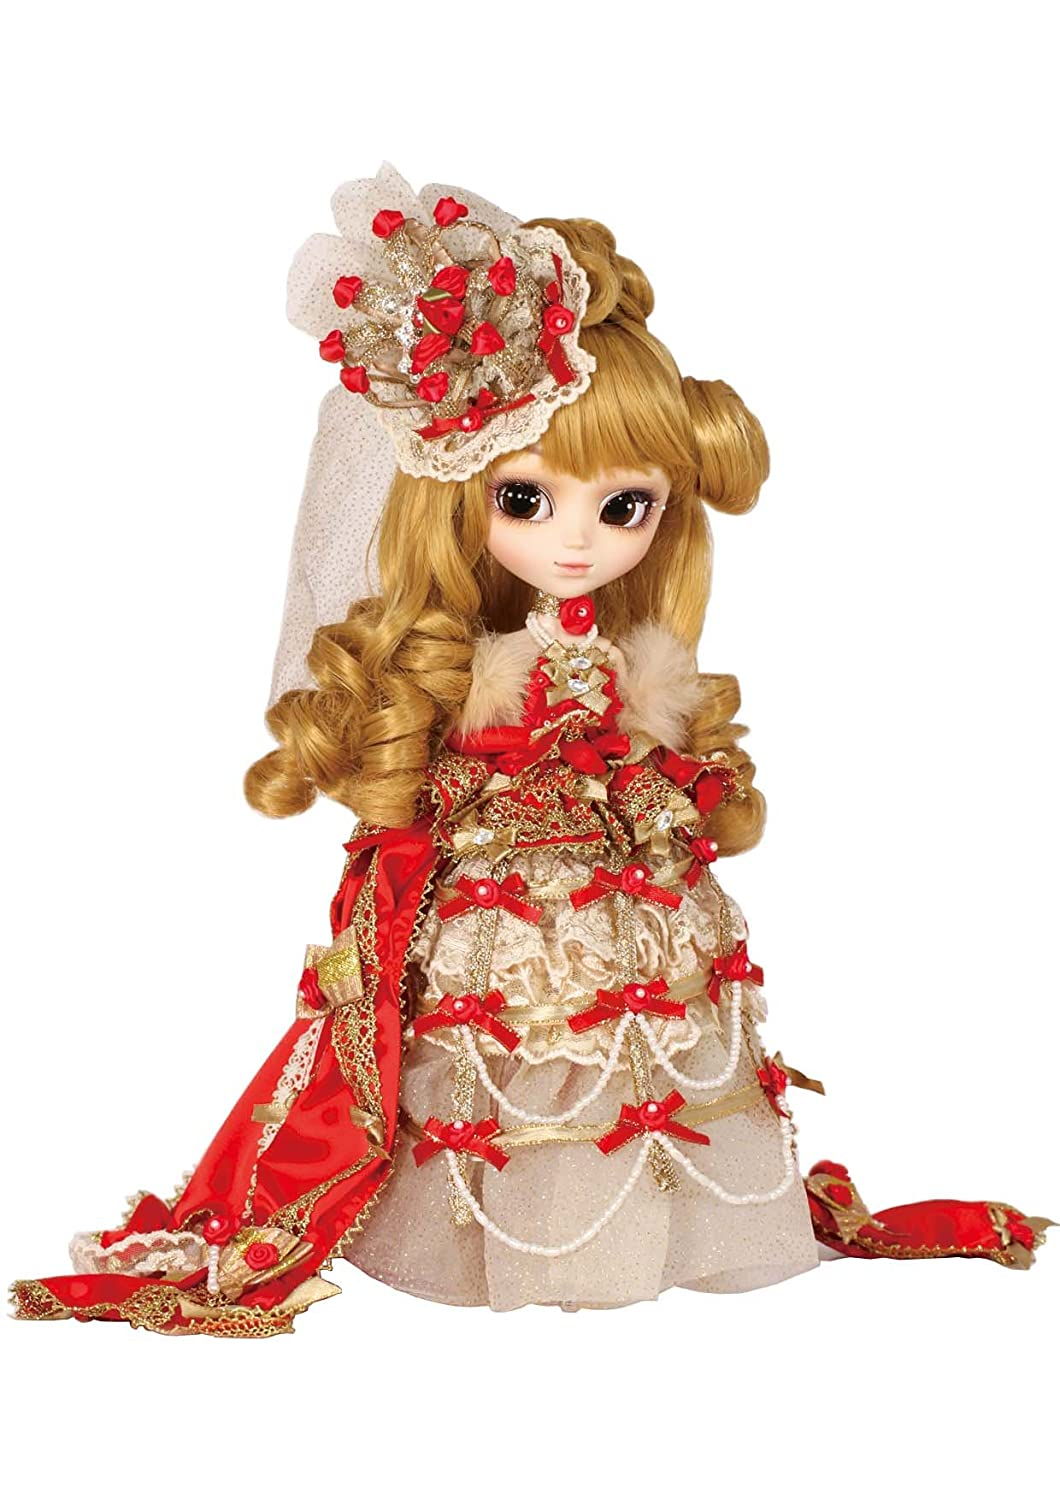 Pullip Dolls Amazon Pullip Dolls Princess Rosalind